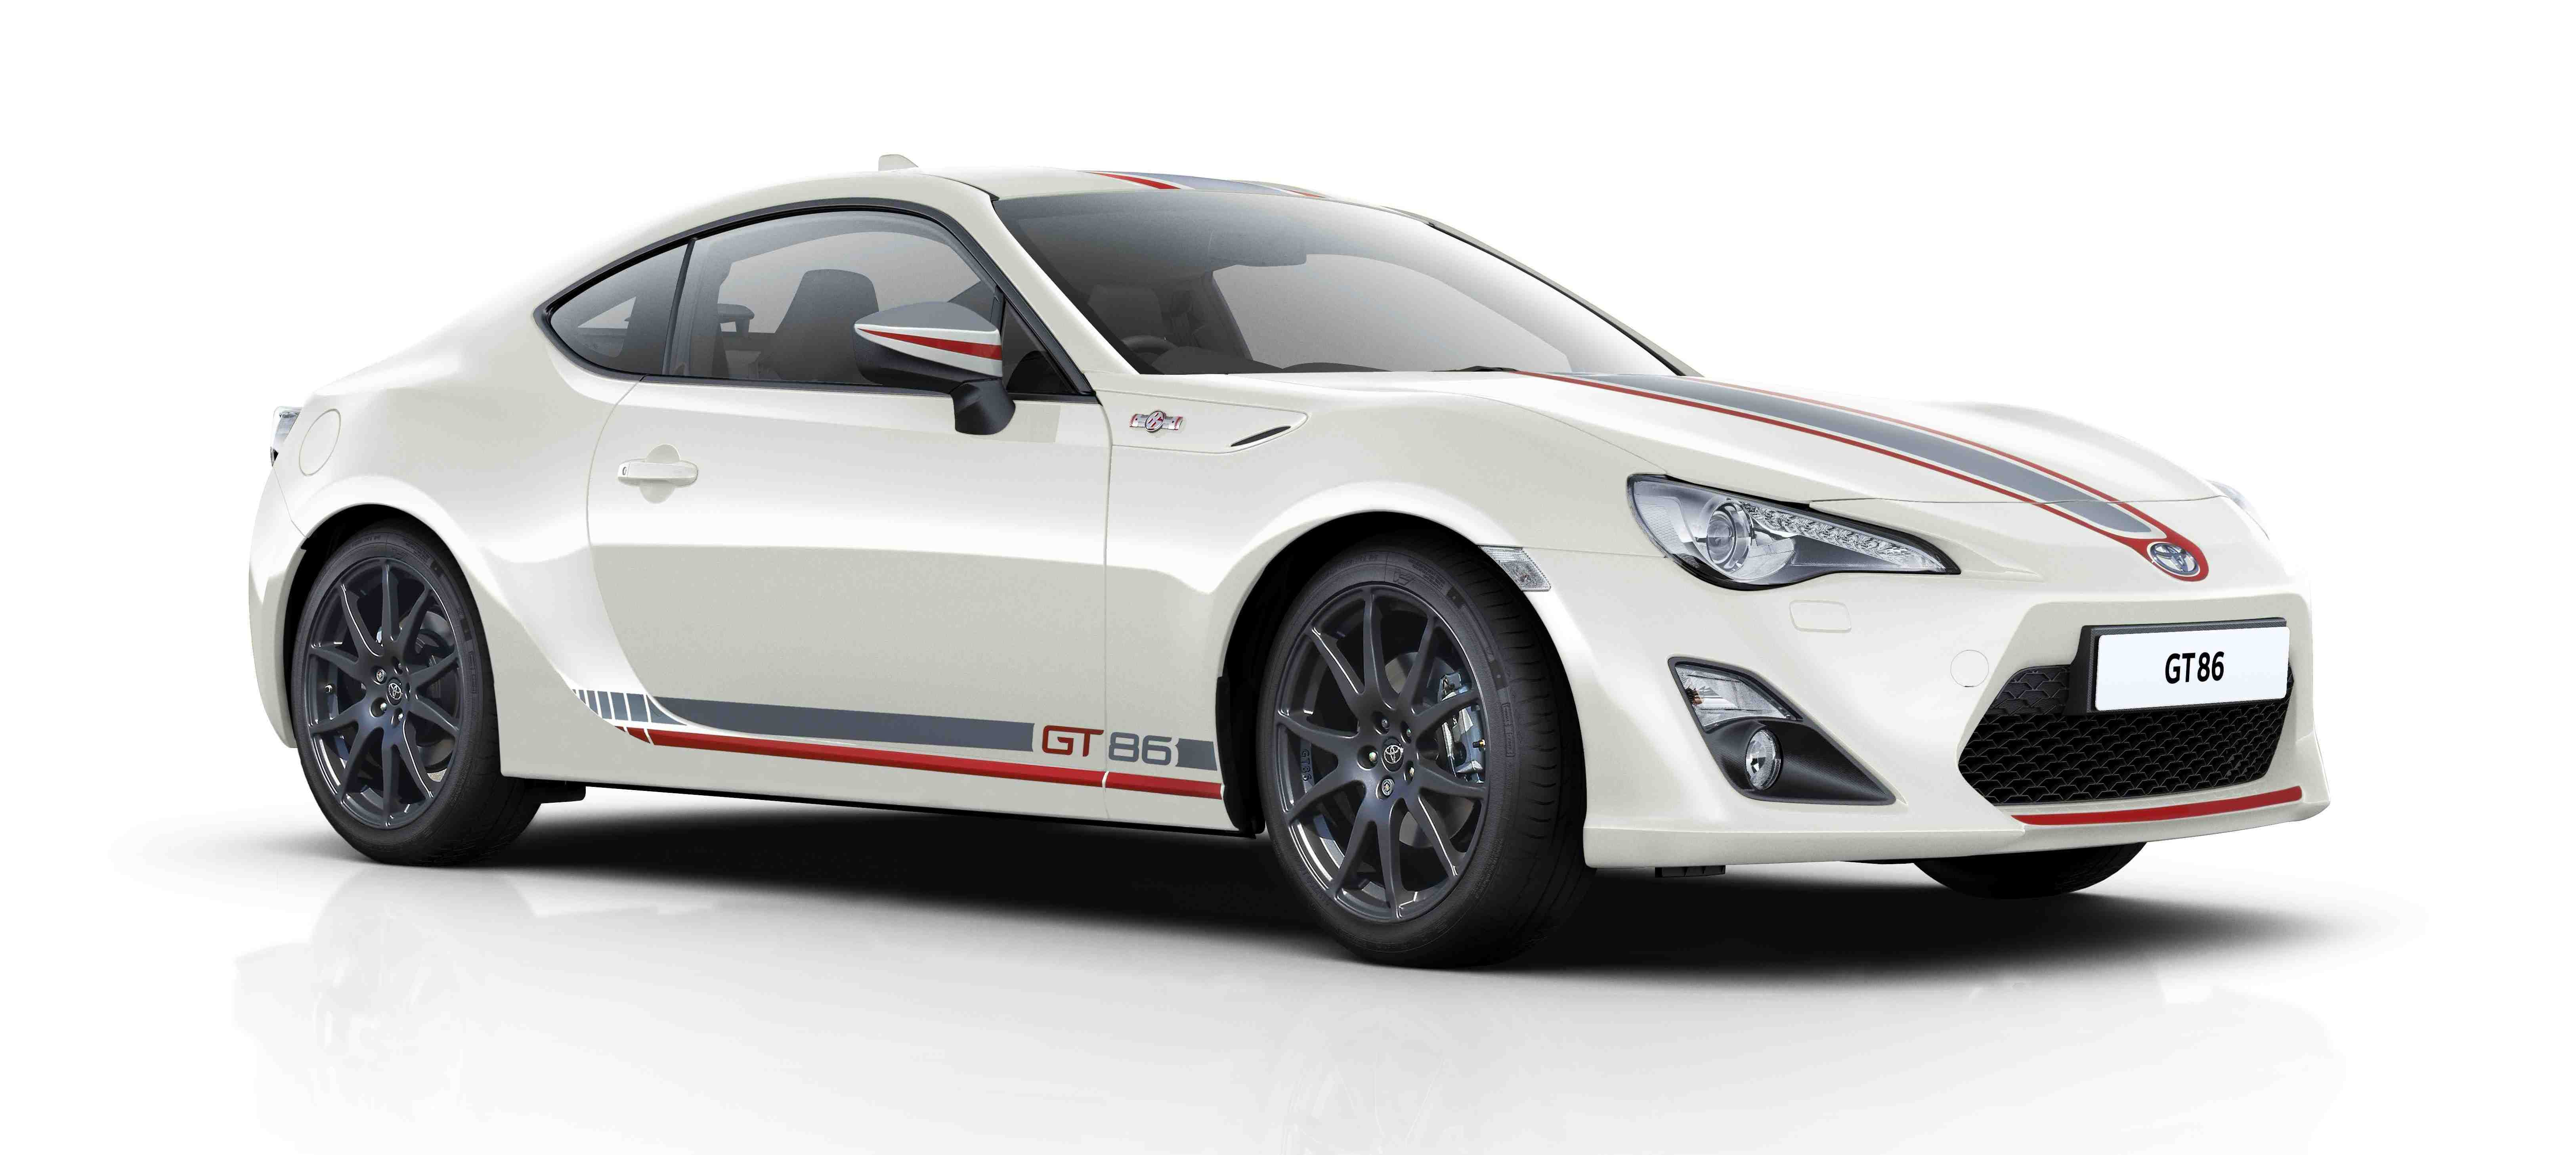 Toyota GT86 limited editions